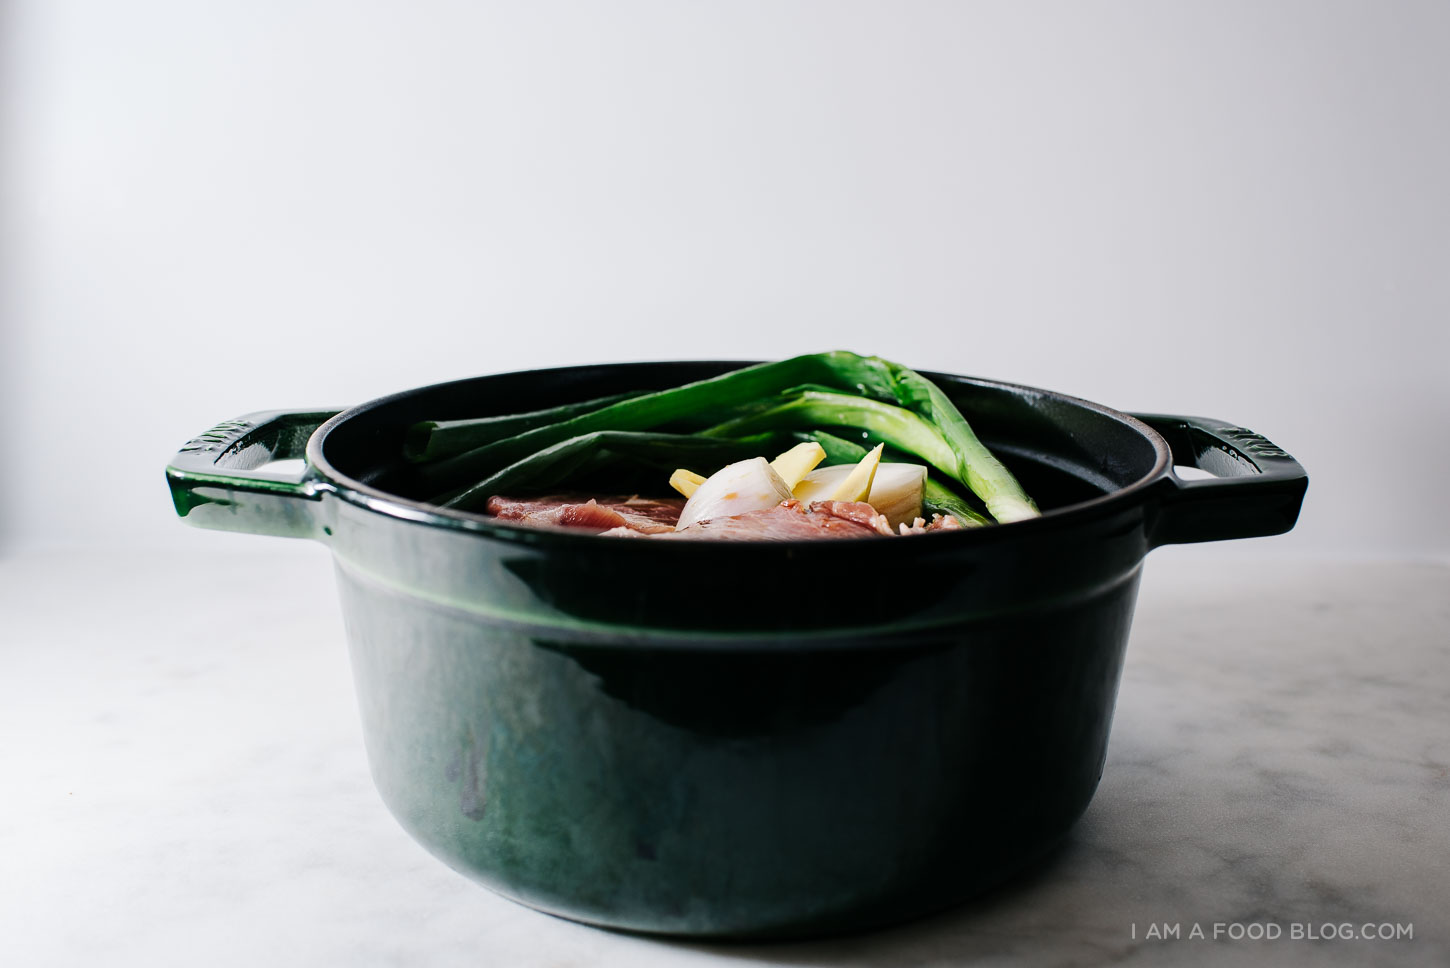 braised chashu pork shoulder recipe - www.iamafoodblog.com